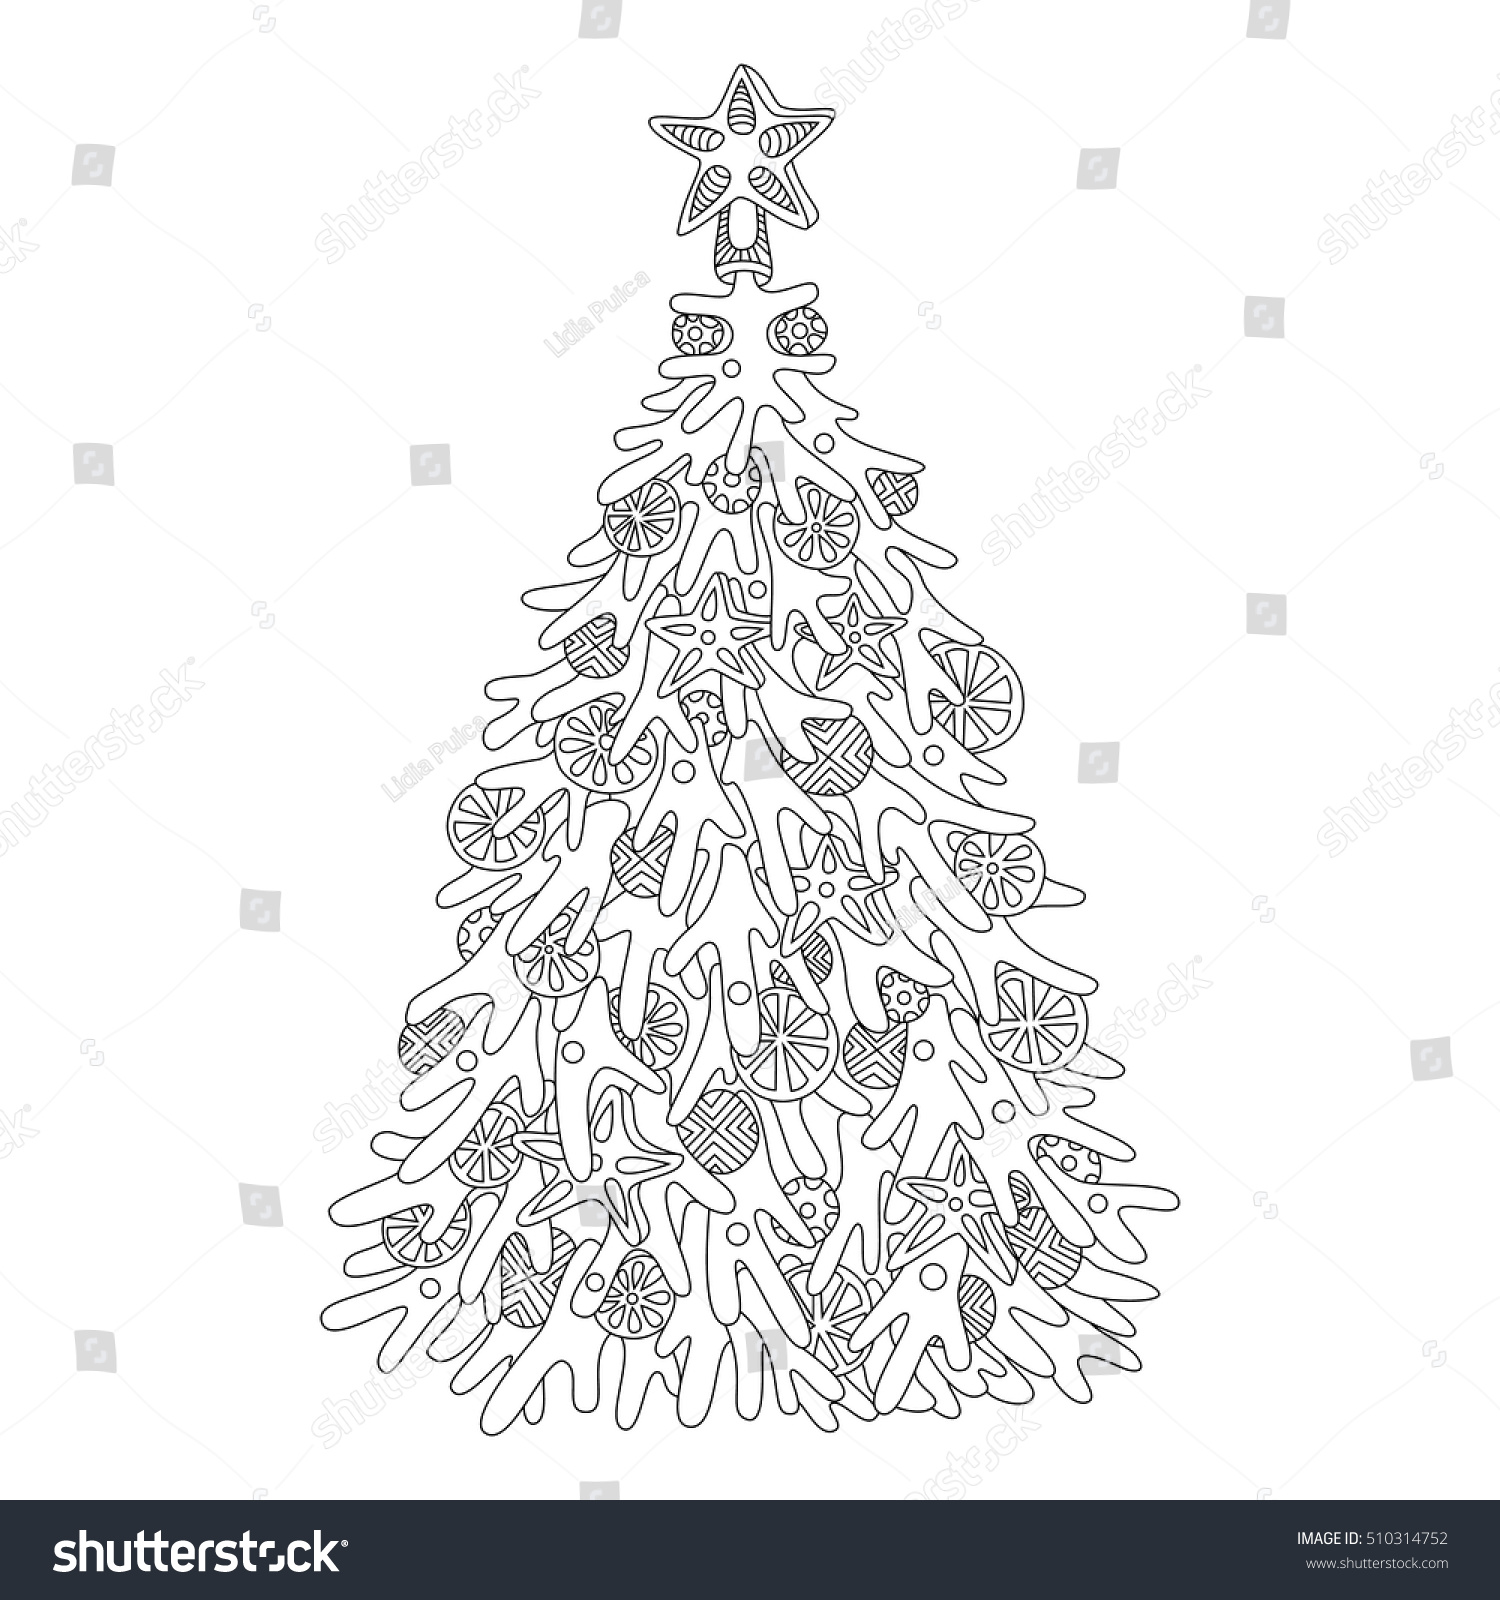 Christmas Tree Adult Coloring Page Adults Stock Vector 510314752